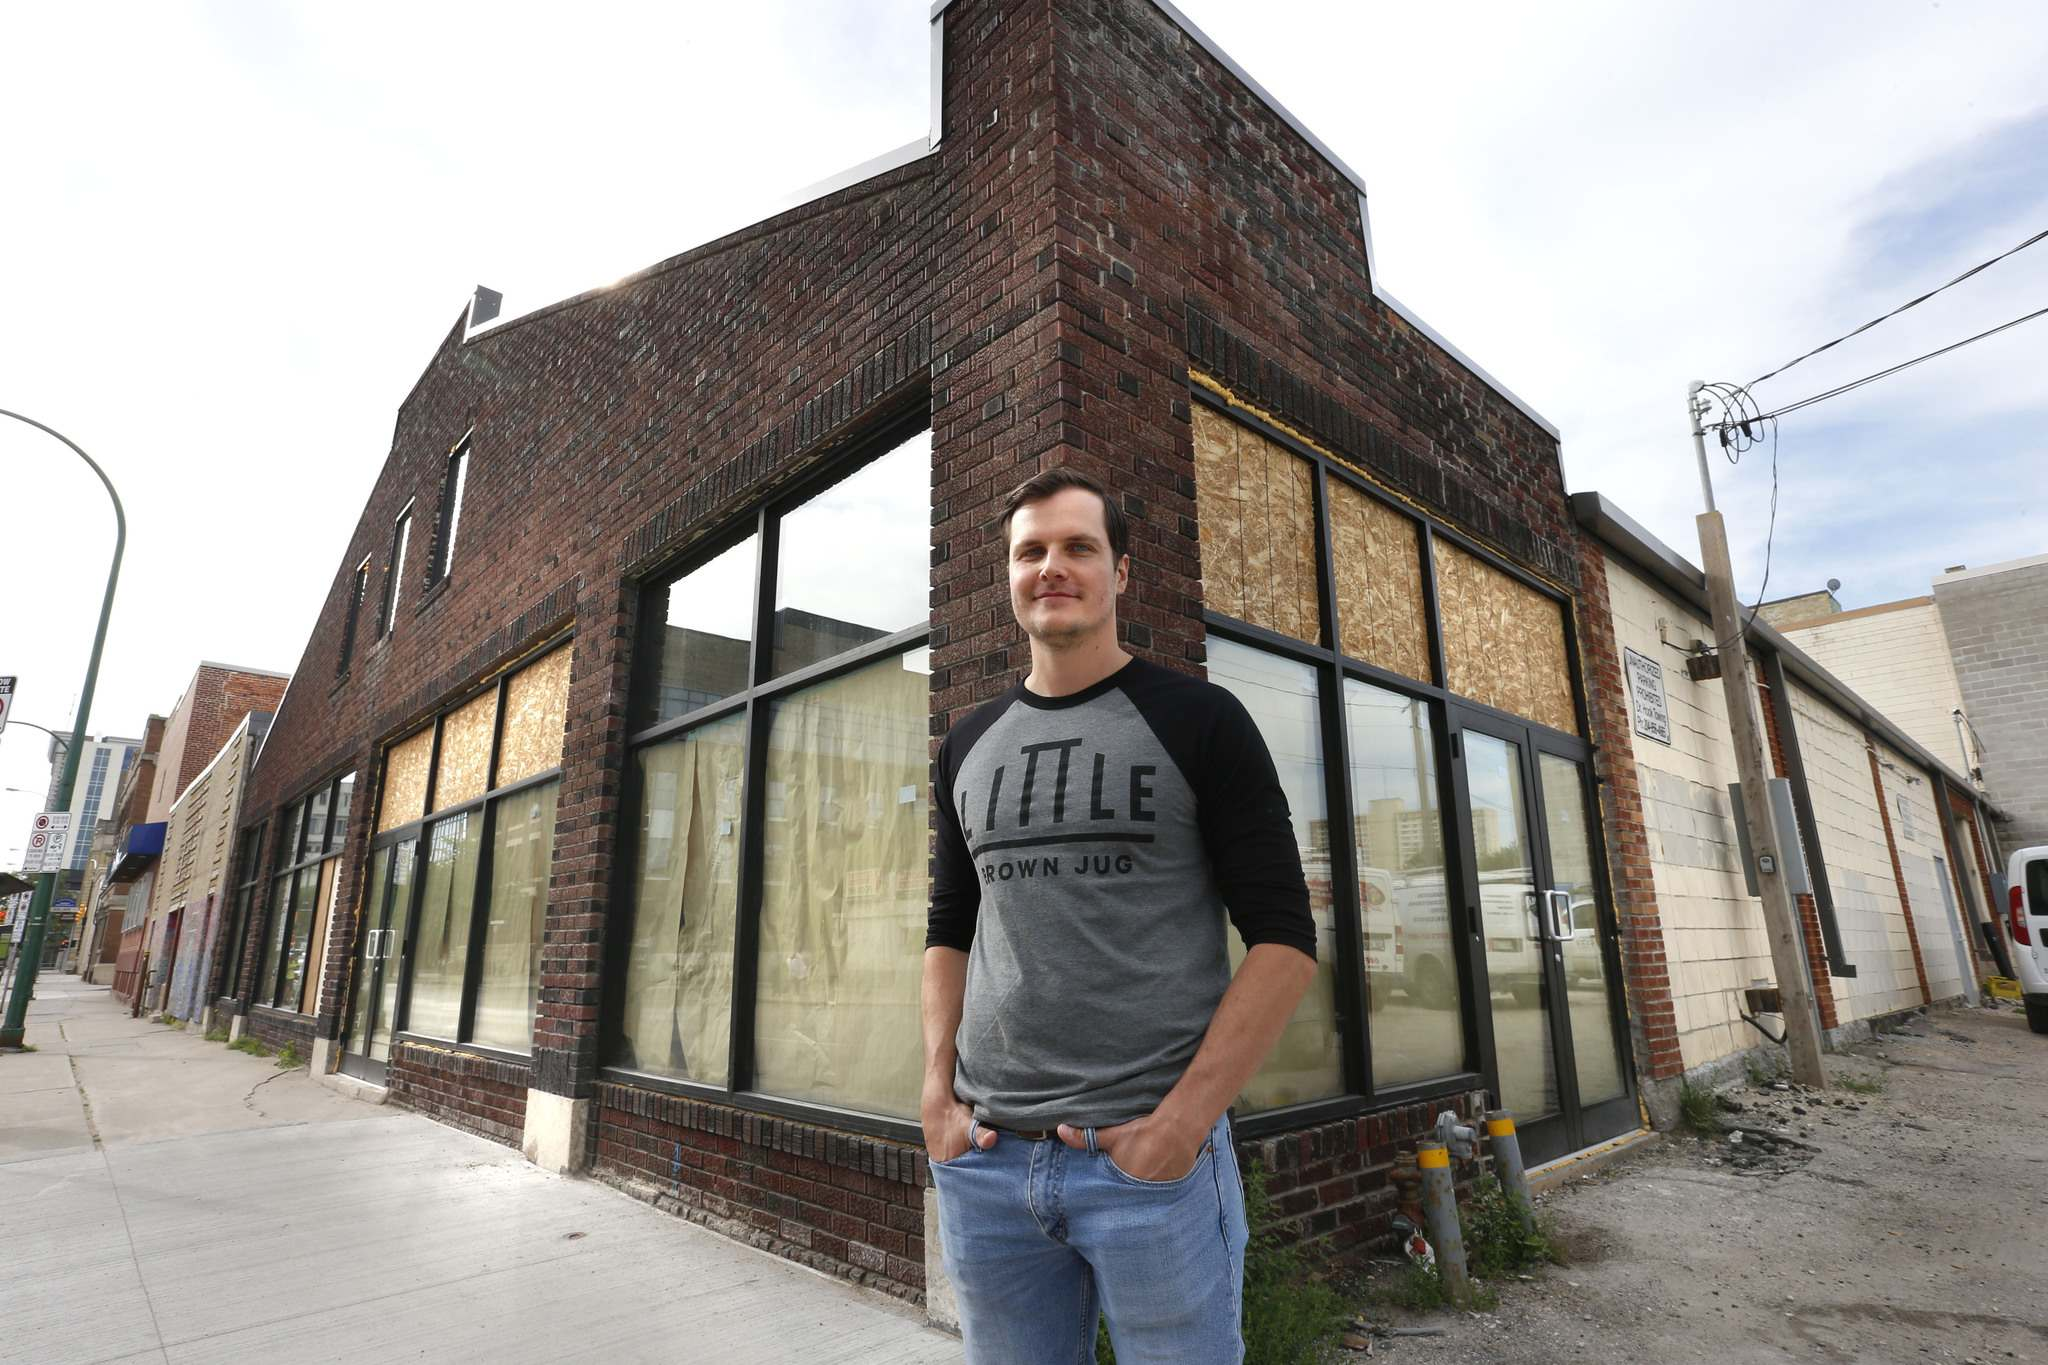 WAYNE GLOWACKI / WINNIPEG FREE PRESS</p><p>Kevin Selch, founder of the Little Brown Jug Brewing Company, plans to offer tap-room visitors a chance to witness the brewing process at the William Avenue brewery.</p>